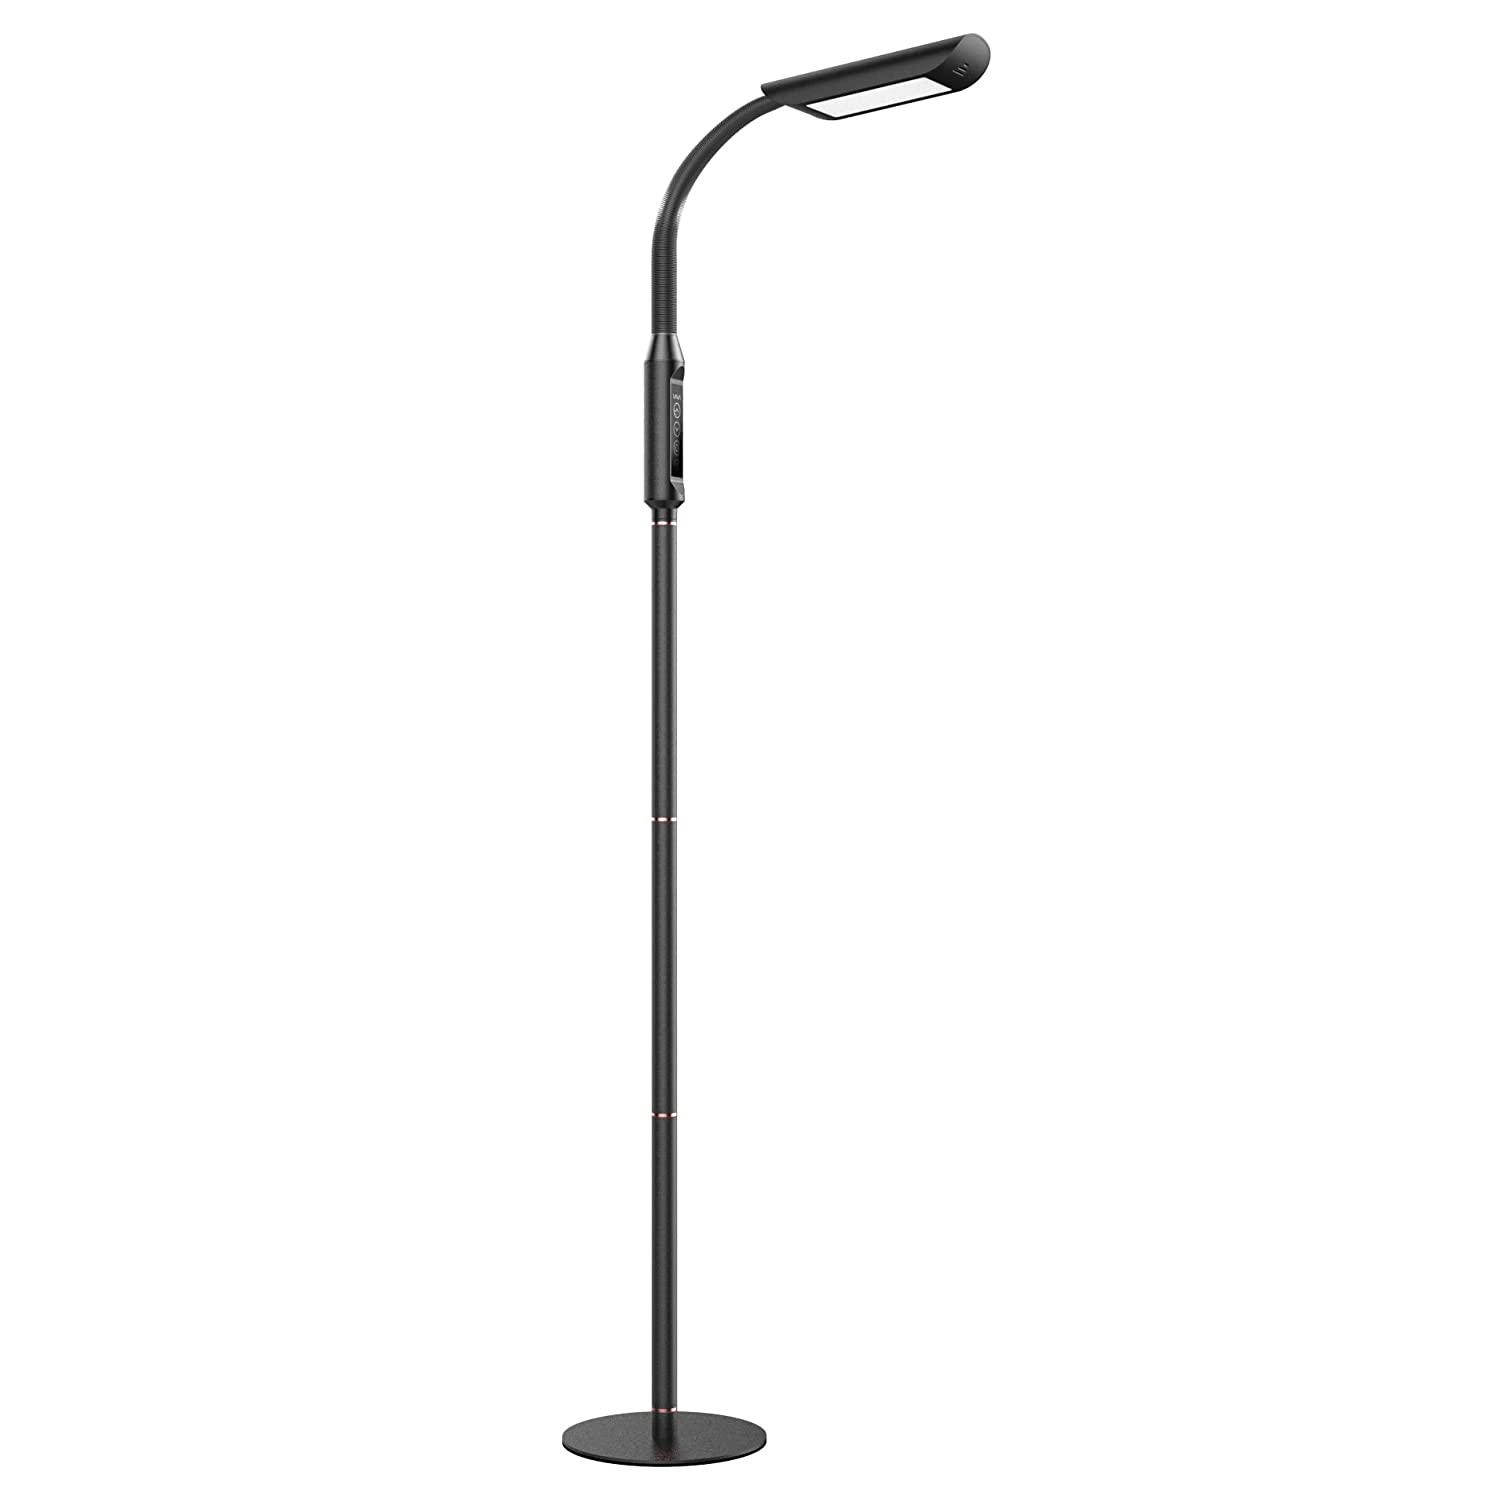 Floor Lamps | Amazon.com | Lighting & Ceiling Fans - Lamps & Shades